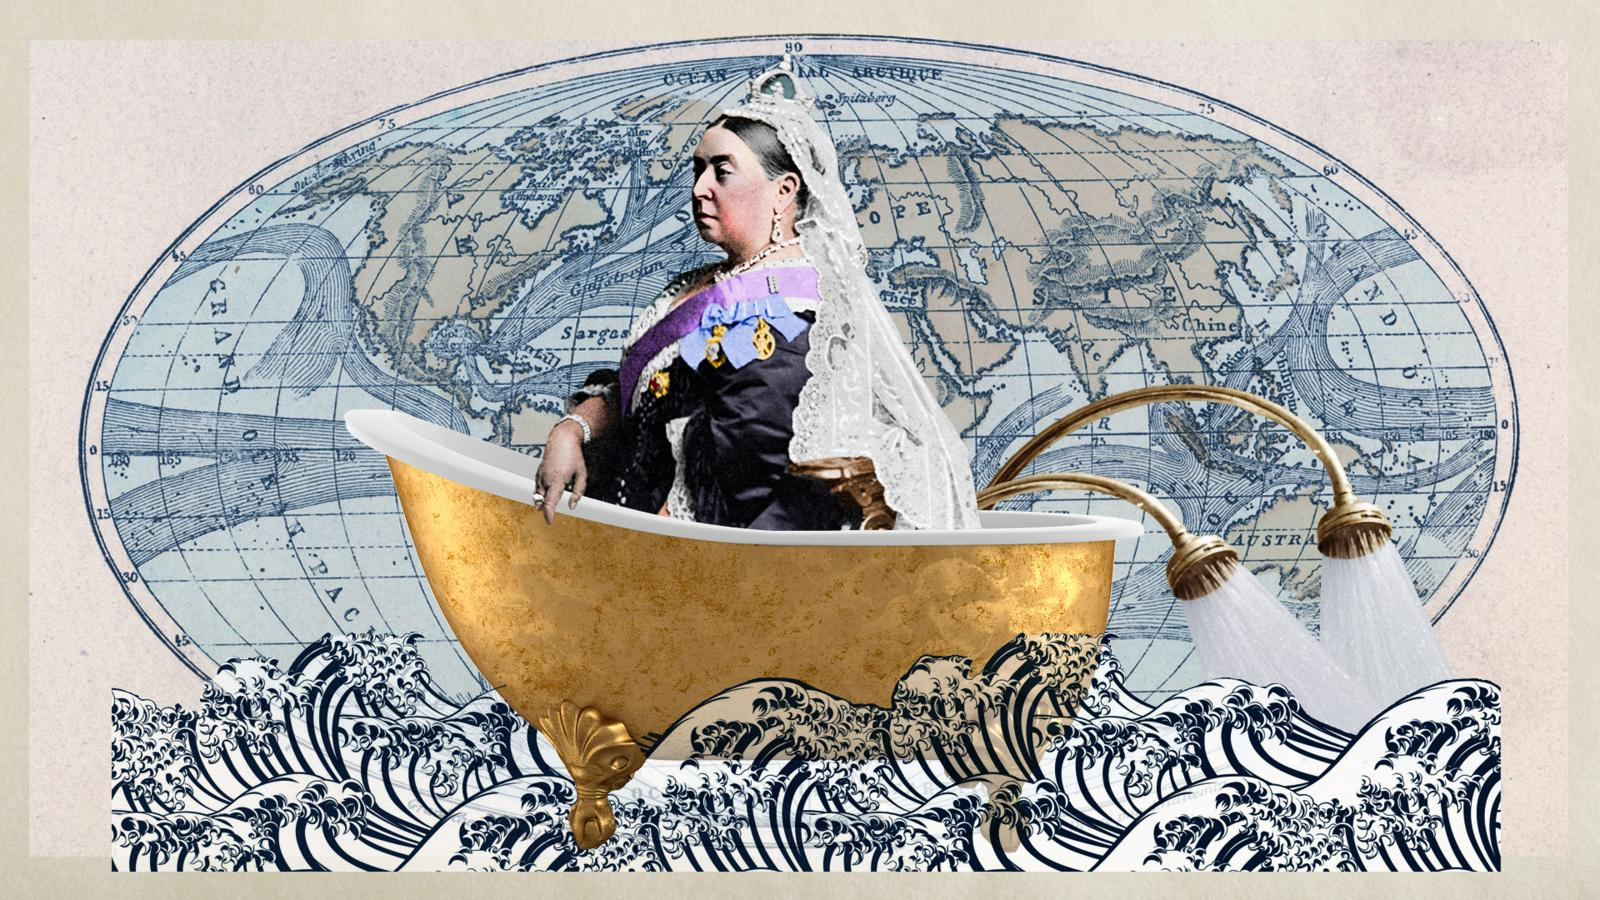 Queen Victoria in a bathtub. Image credit to BBC.